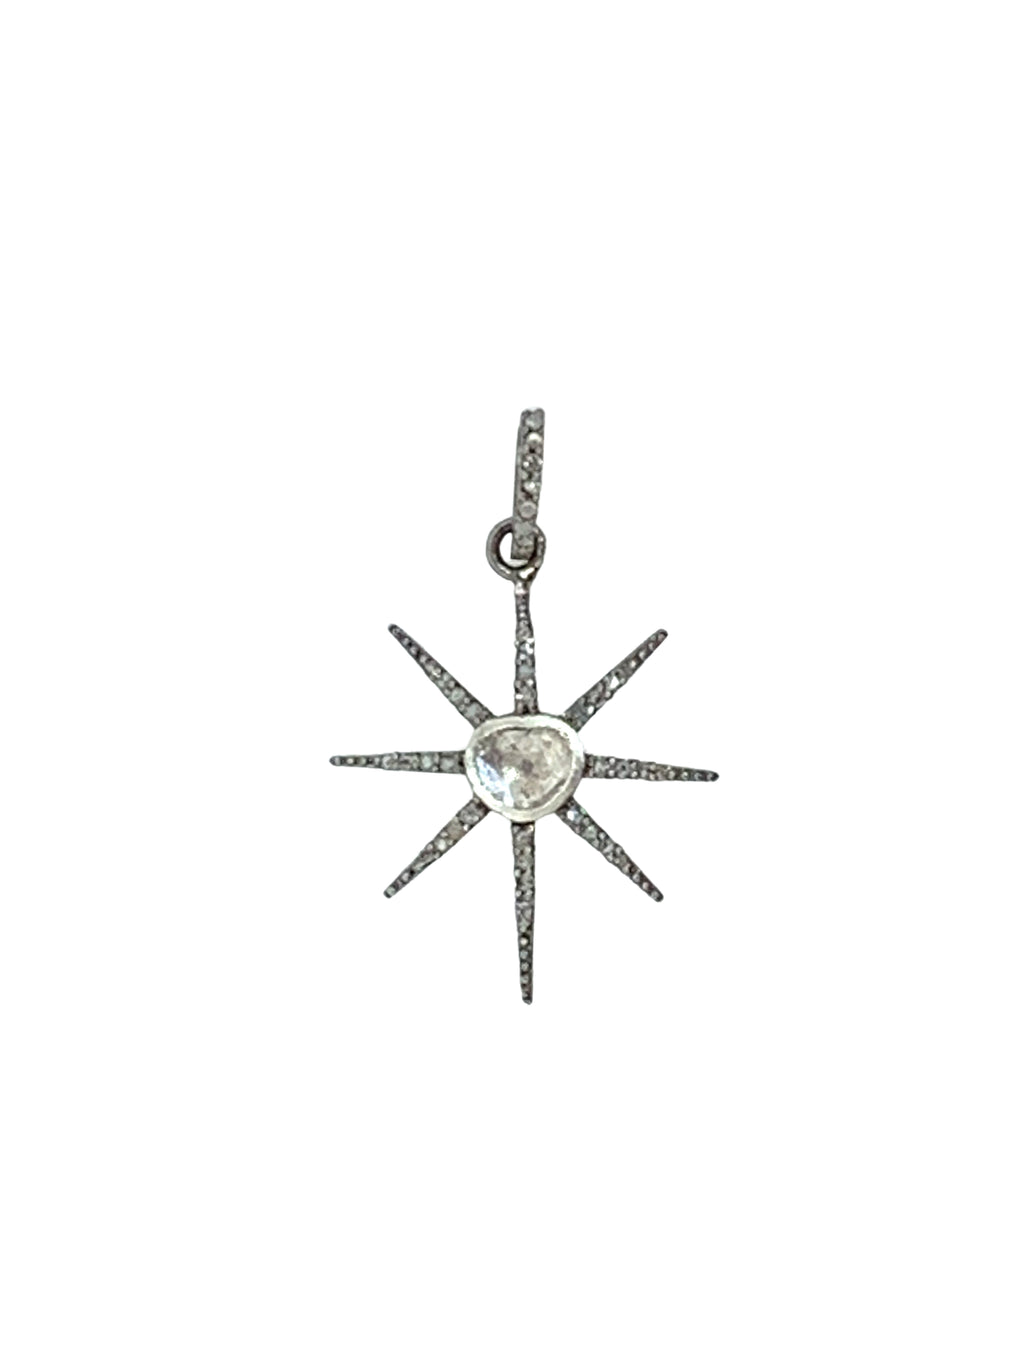 Diamond Center Starburst in Sterling Silver